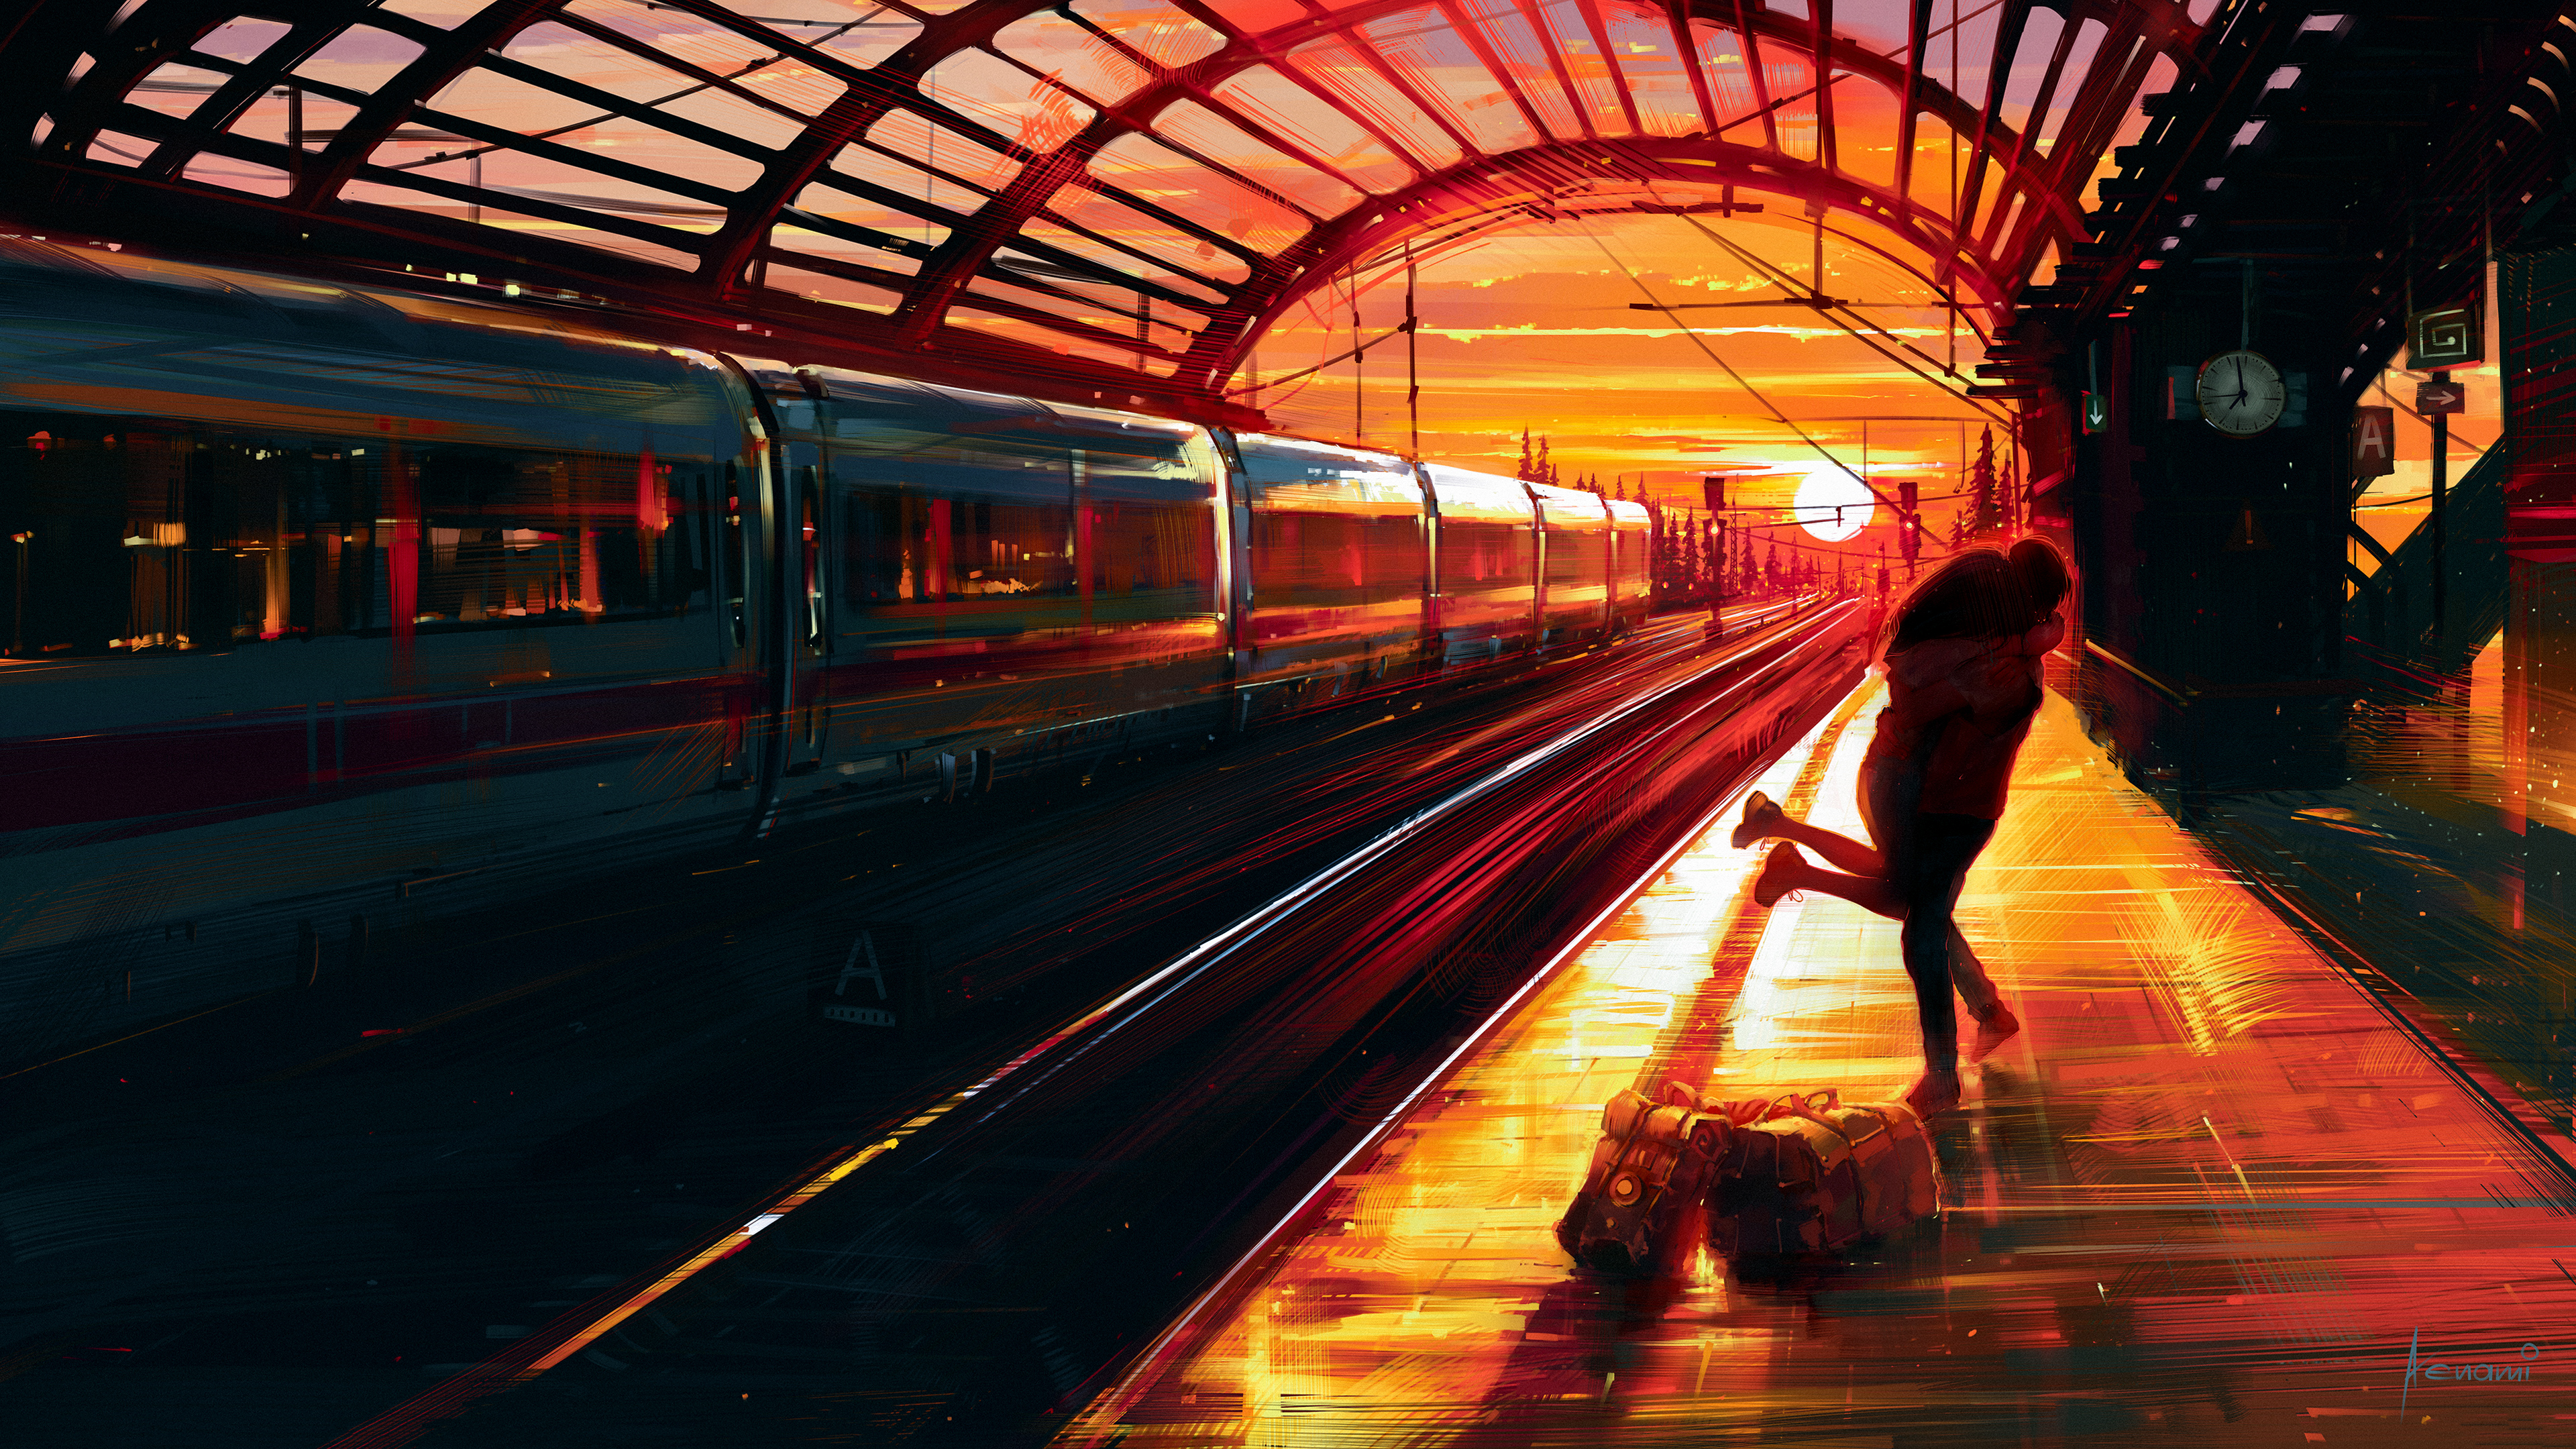 couple hugging at train station 1574939686 - Couple Hugging At Train Station -